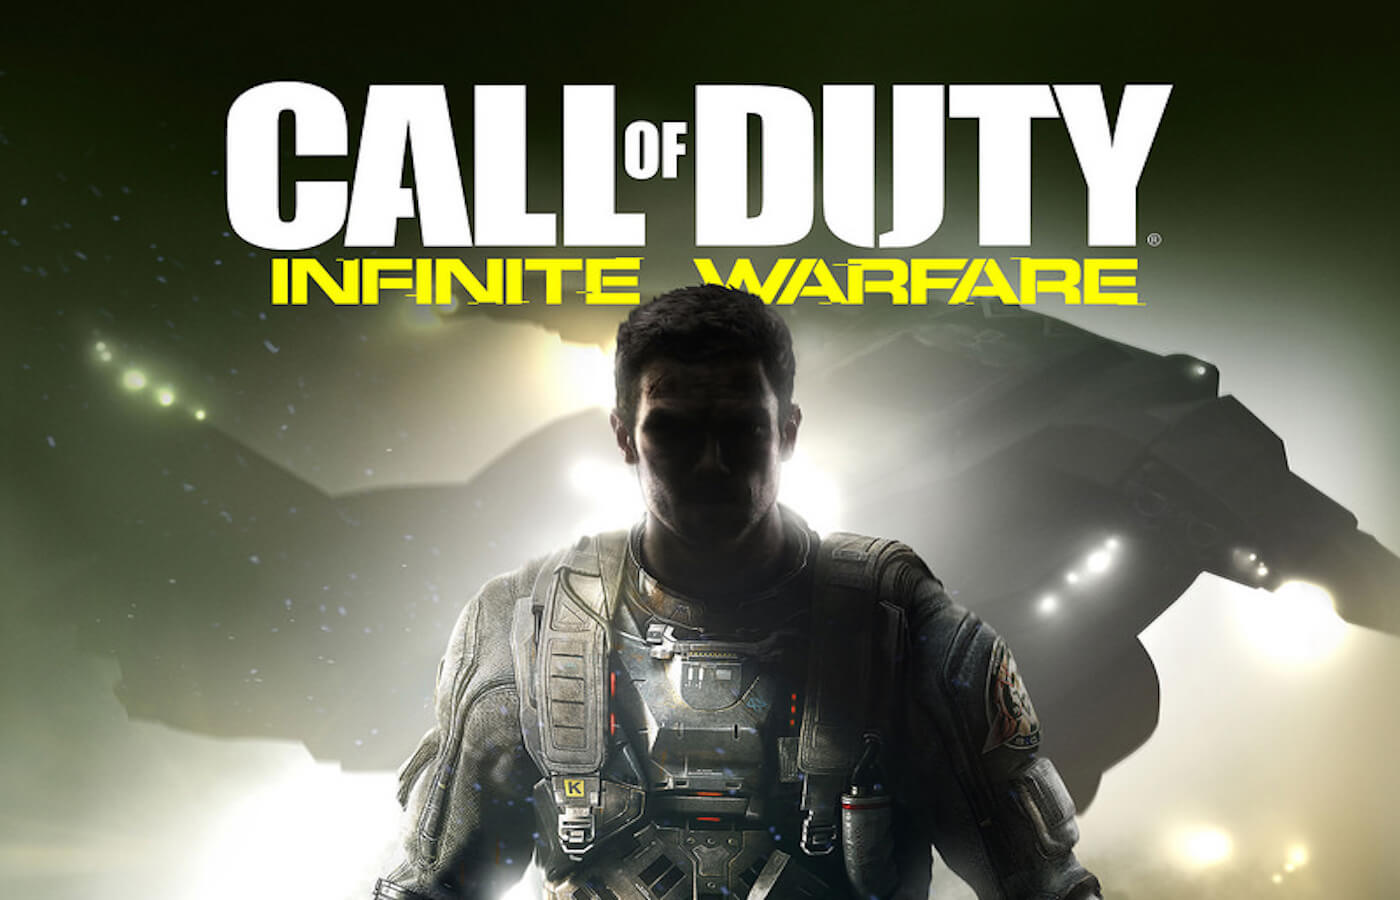 Call of duty infinite warfare cover 2